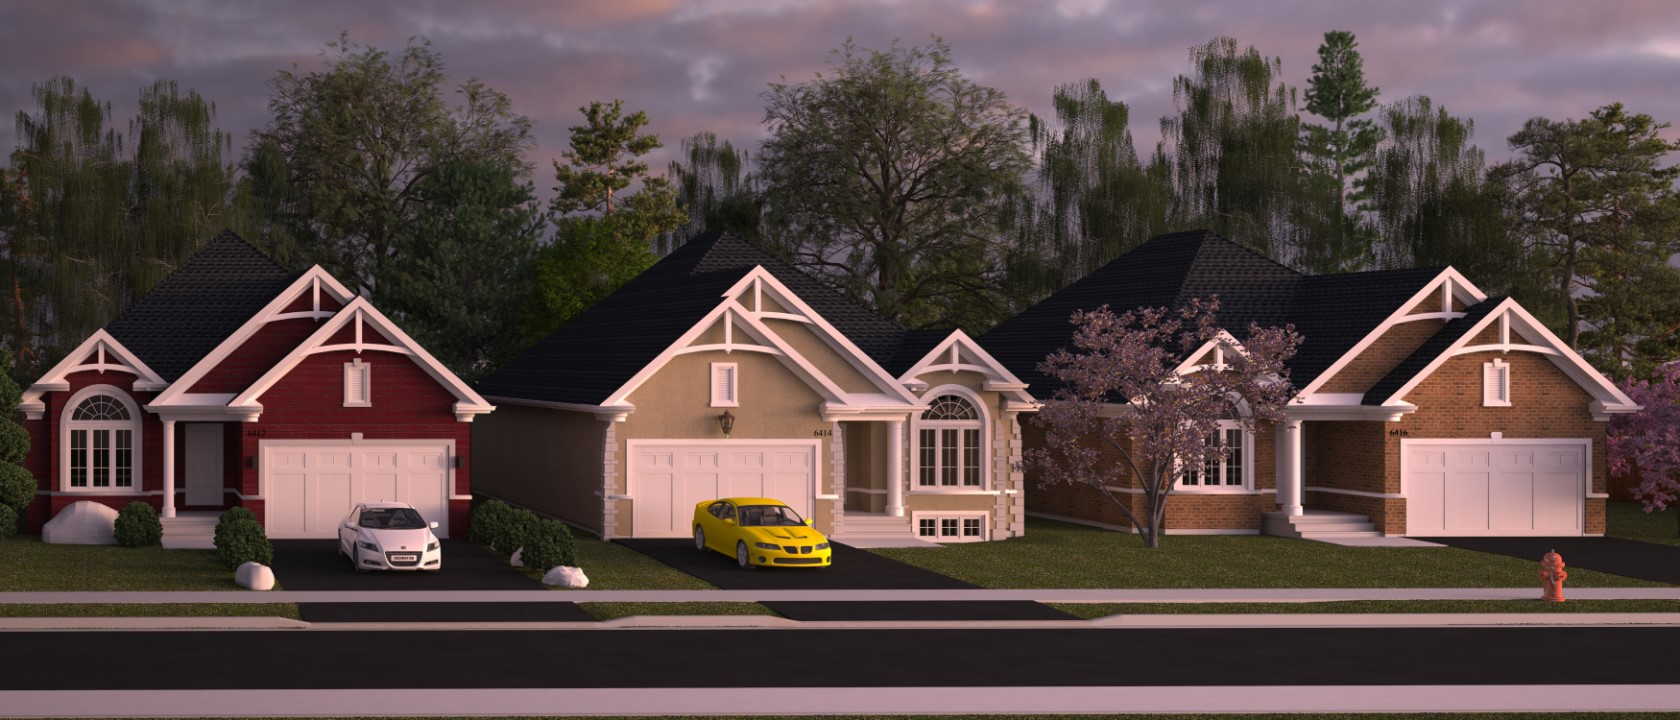 Renders - Three Houses - Street View - AutoCAD - Render - 3D Visualization